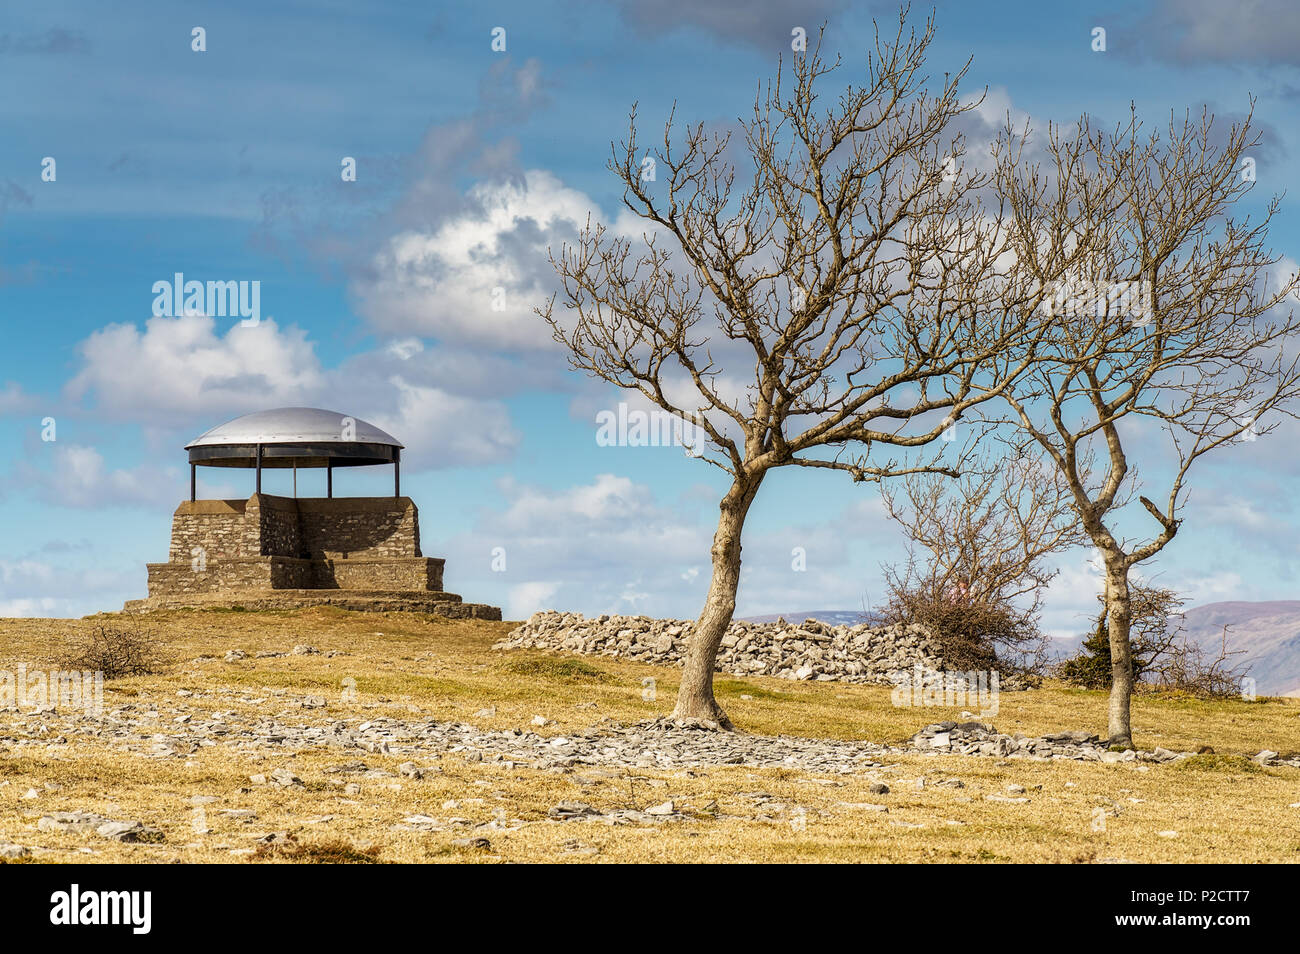 The mushroom on Scout scar, Kendal, with Ash trees. - Stock Image